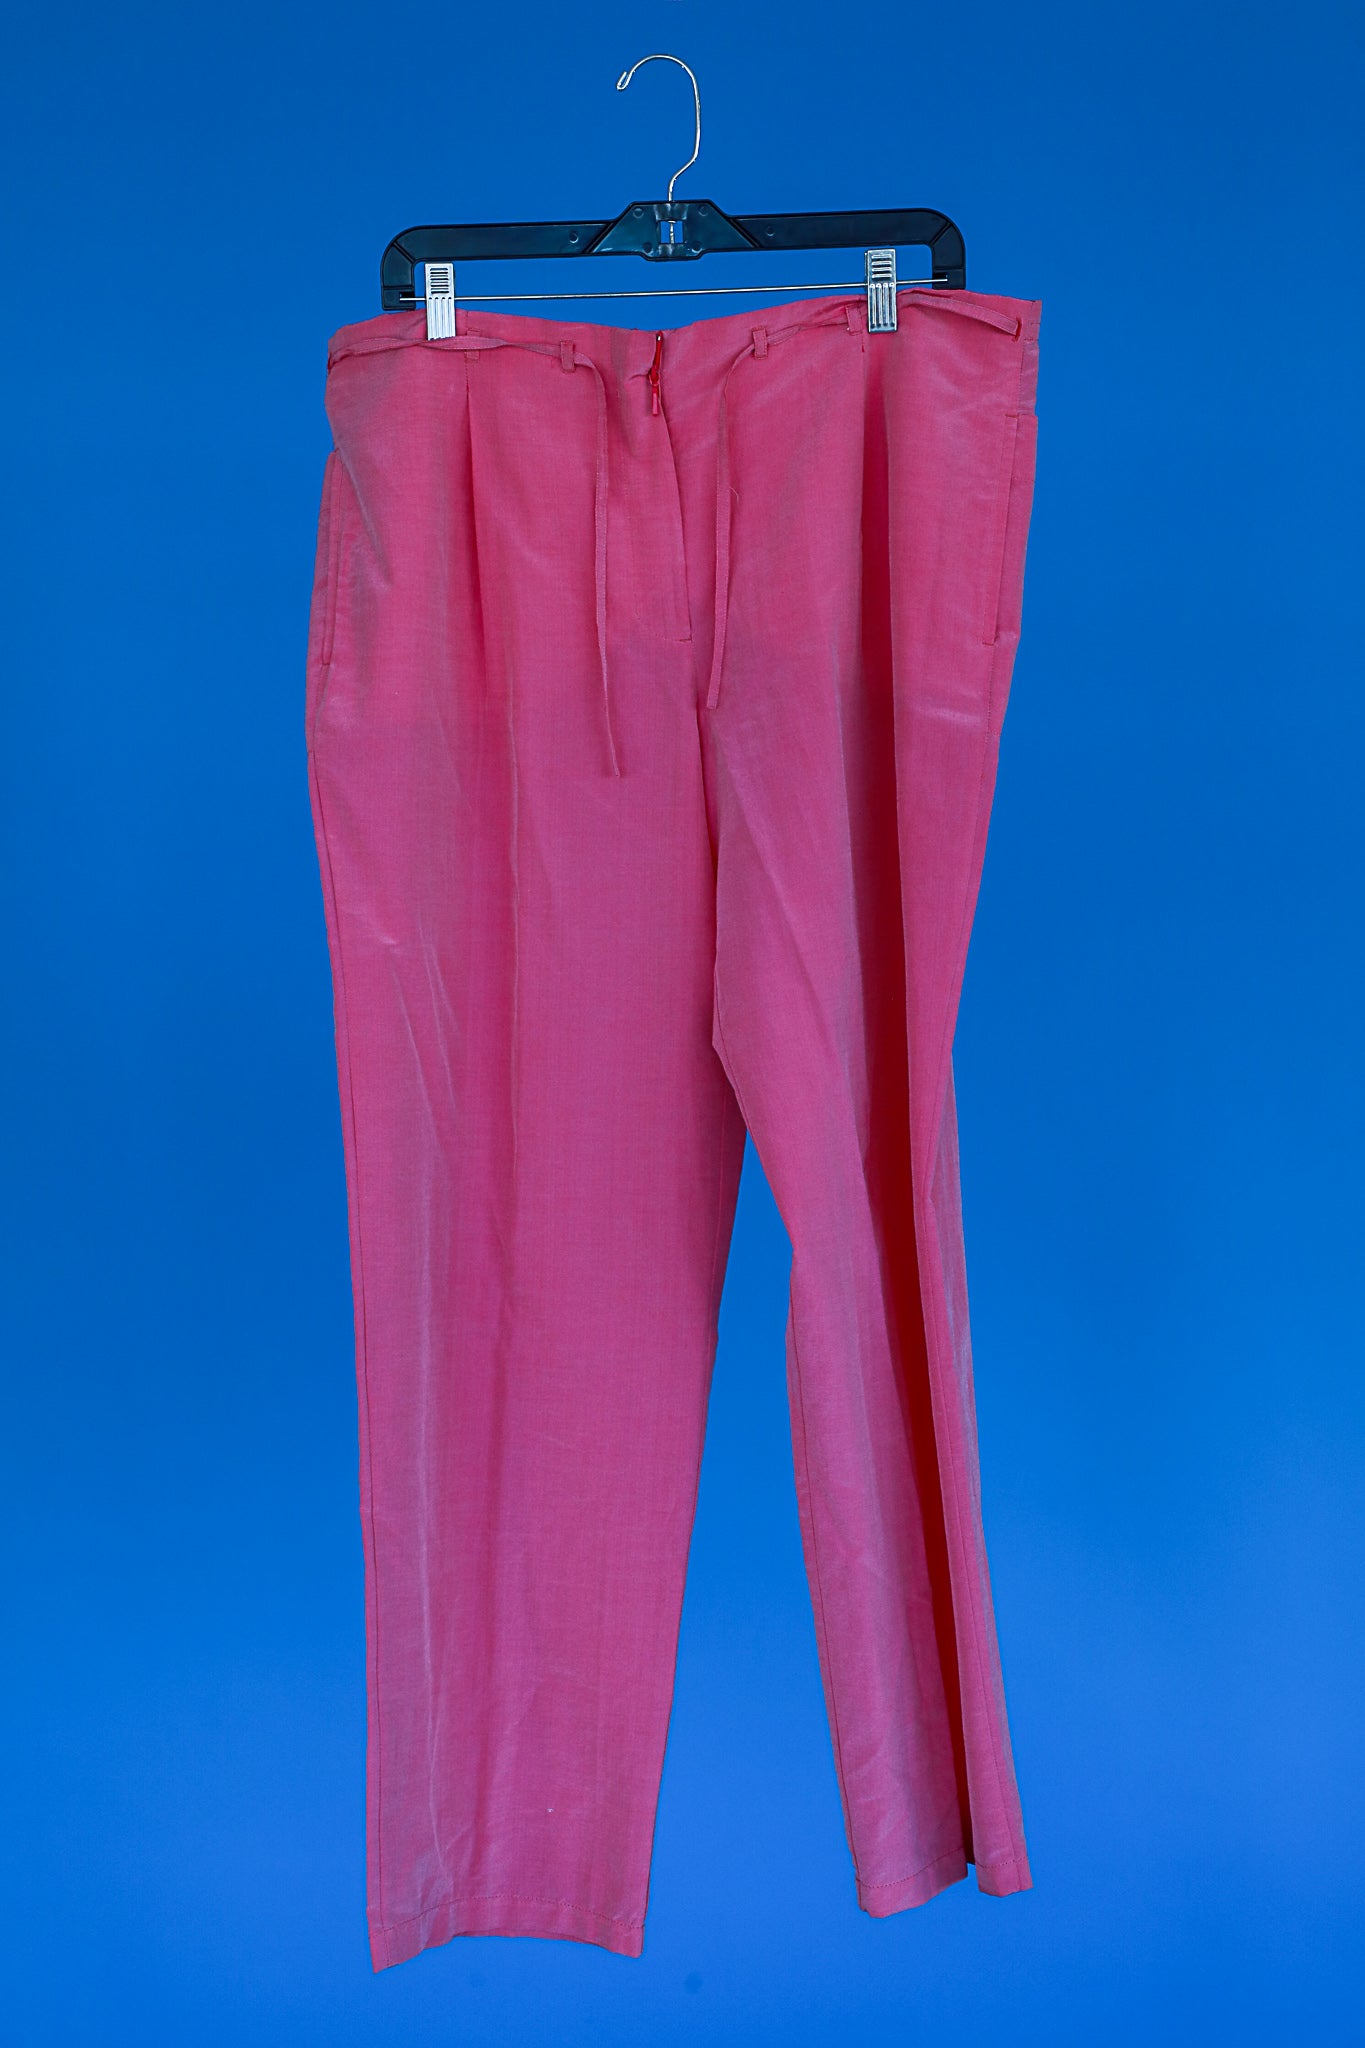 Pink drawstring pants by Escada Sport